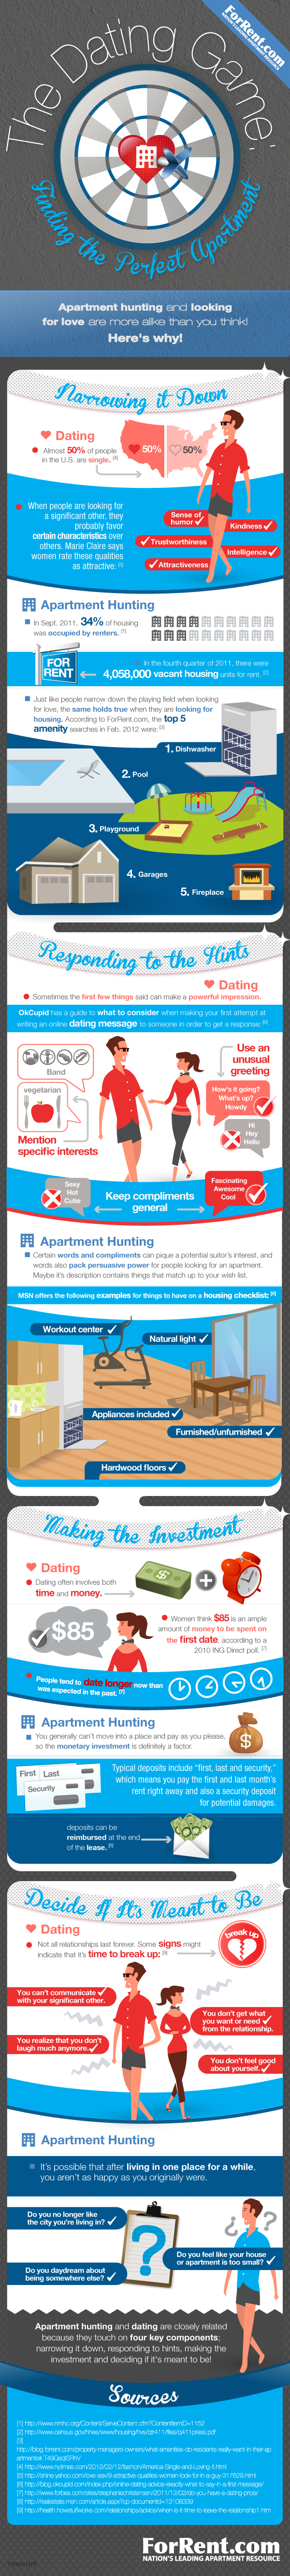 The Dating Game: Finding the Perfect Apartment